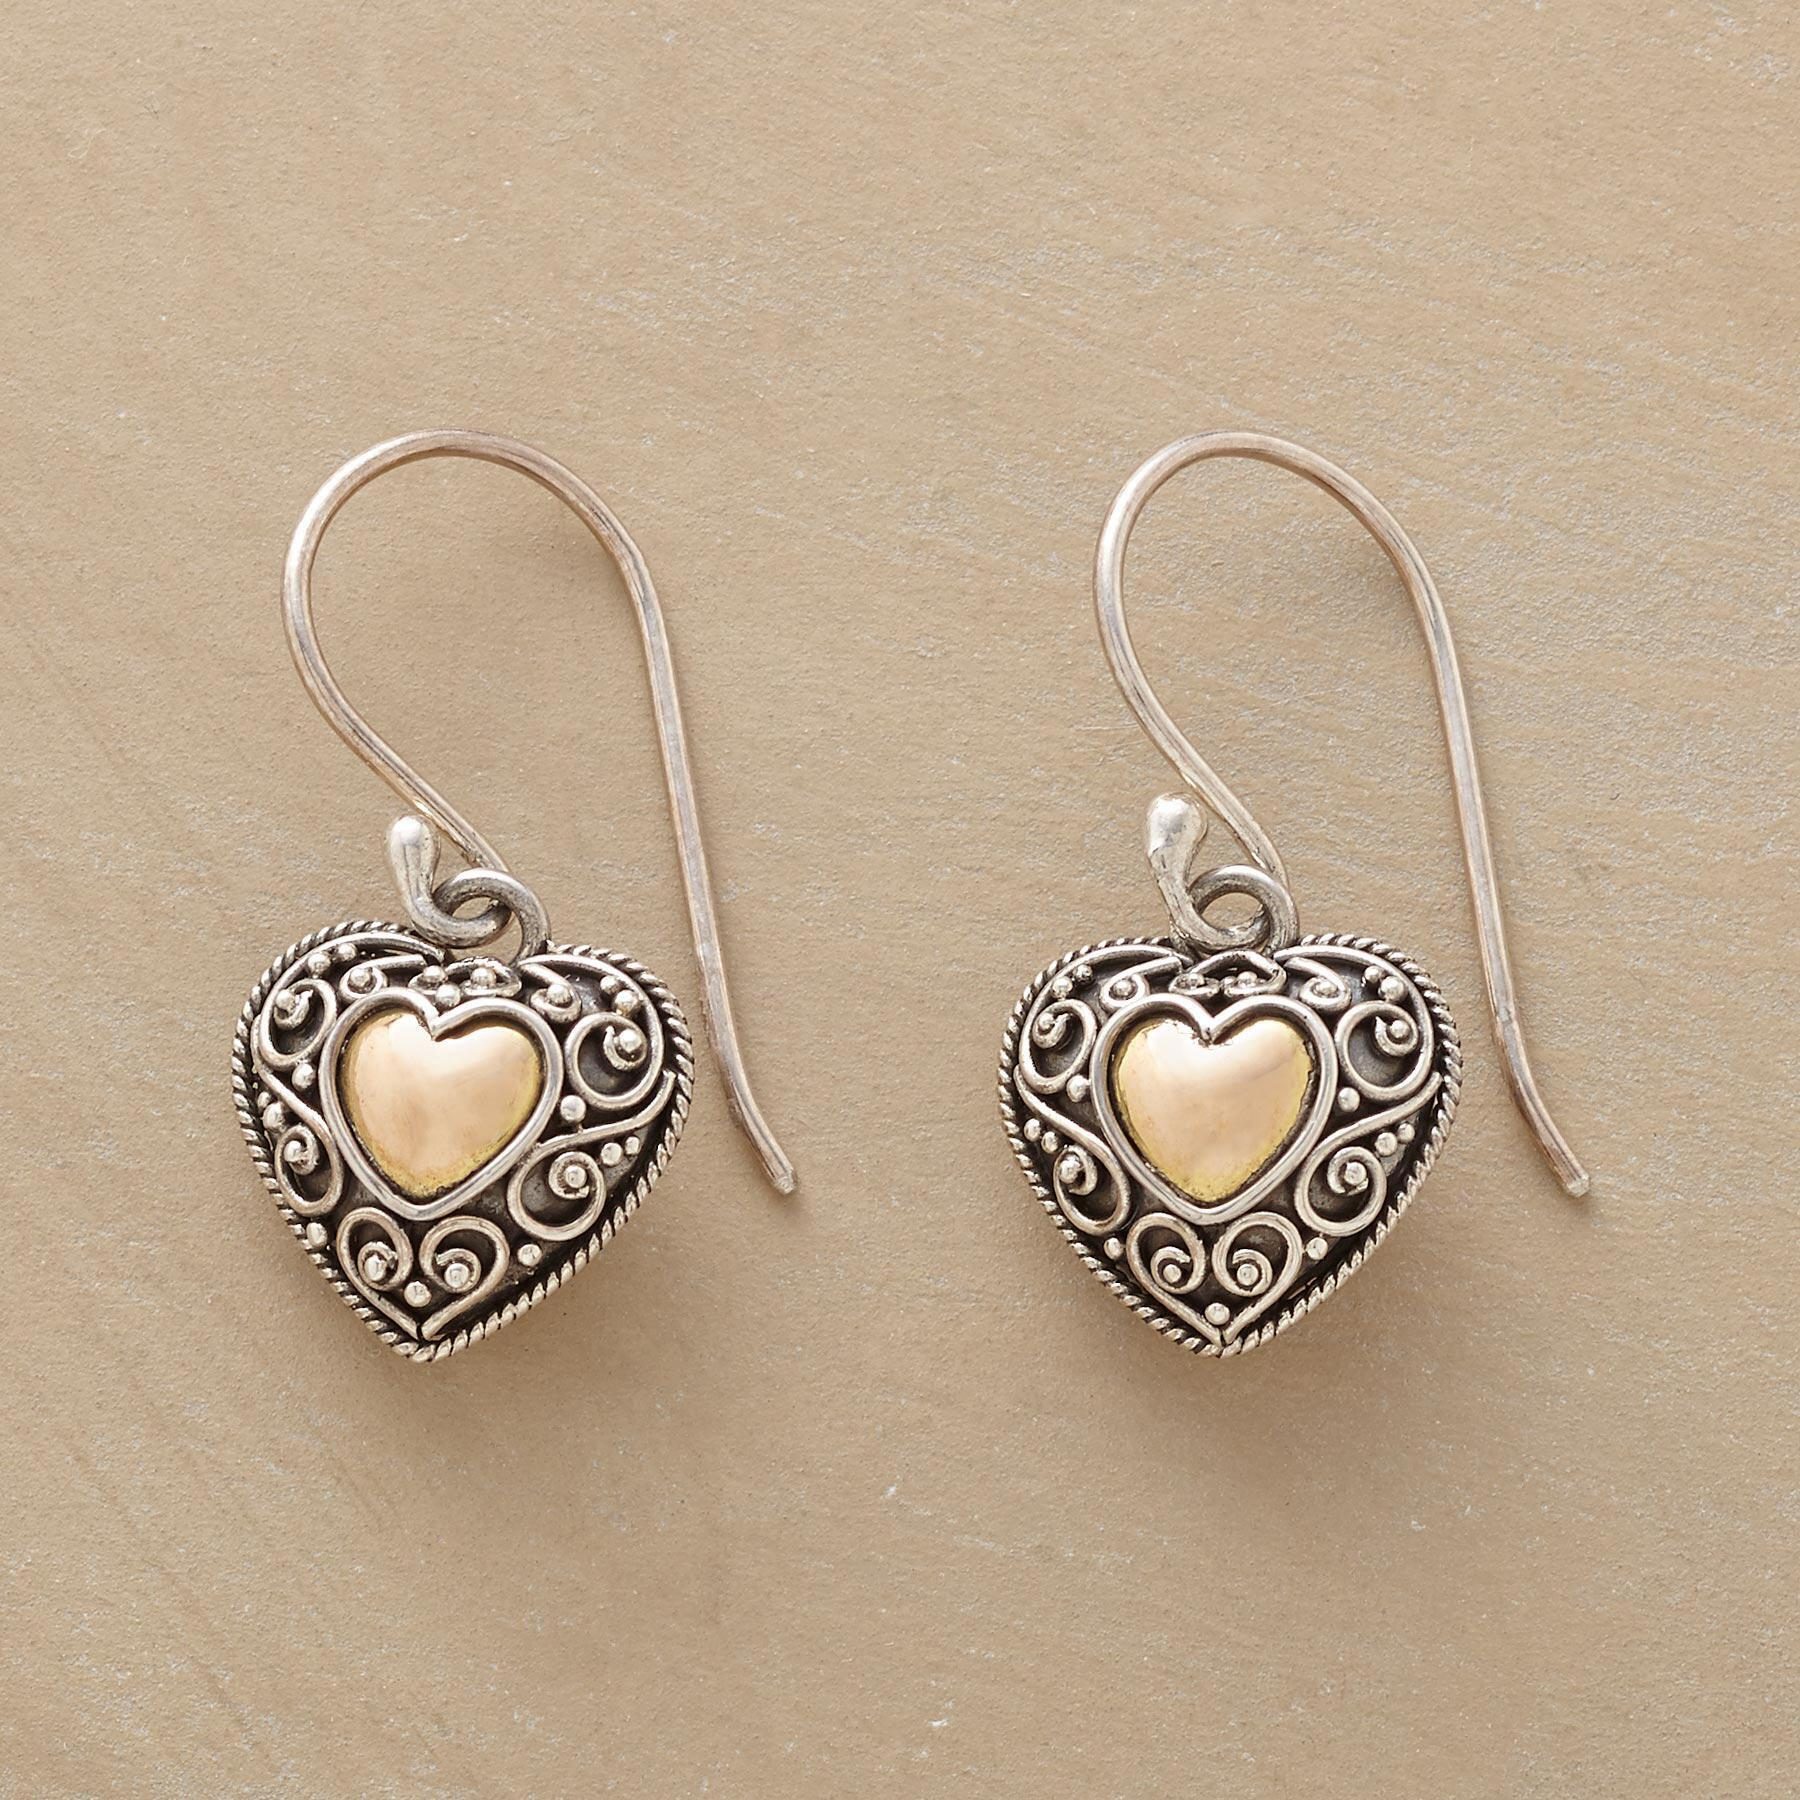 FULL HEART EARRINGS  : View 1